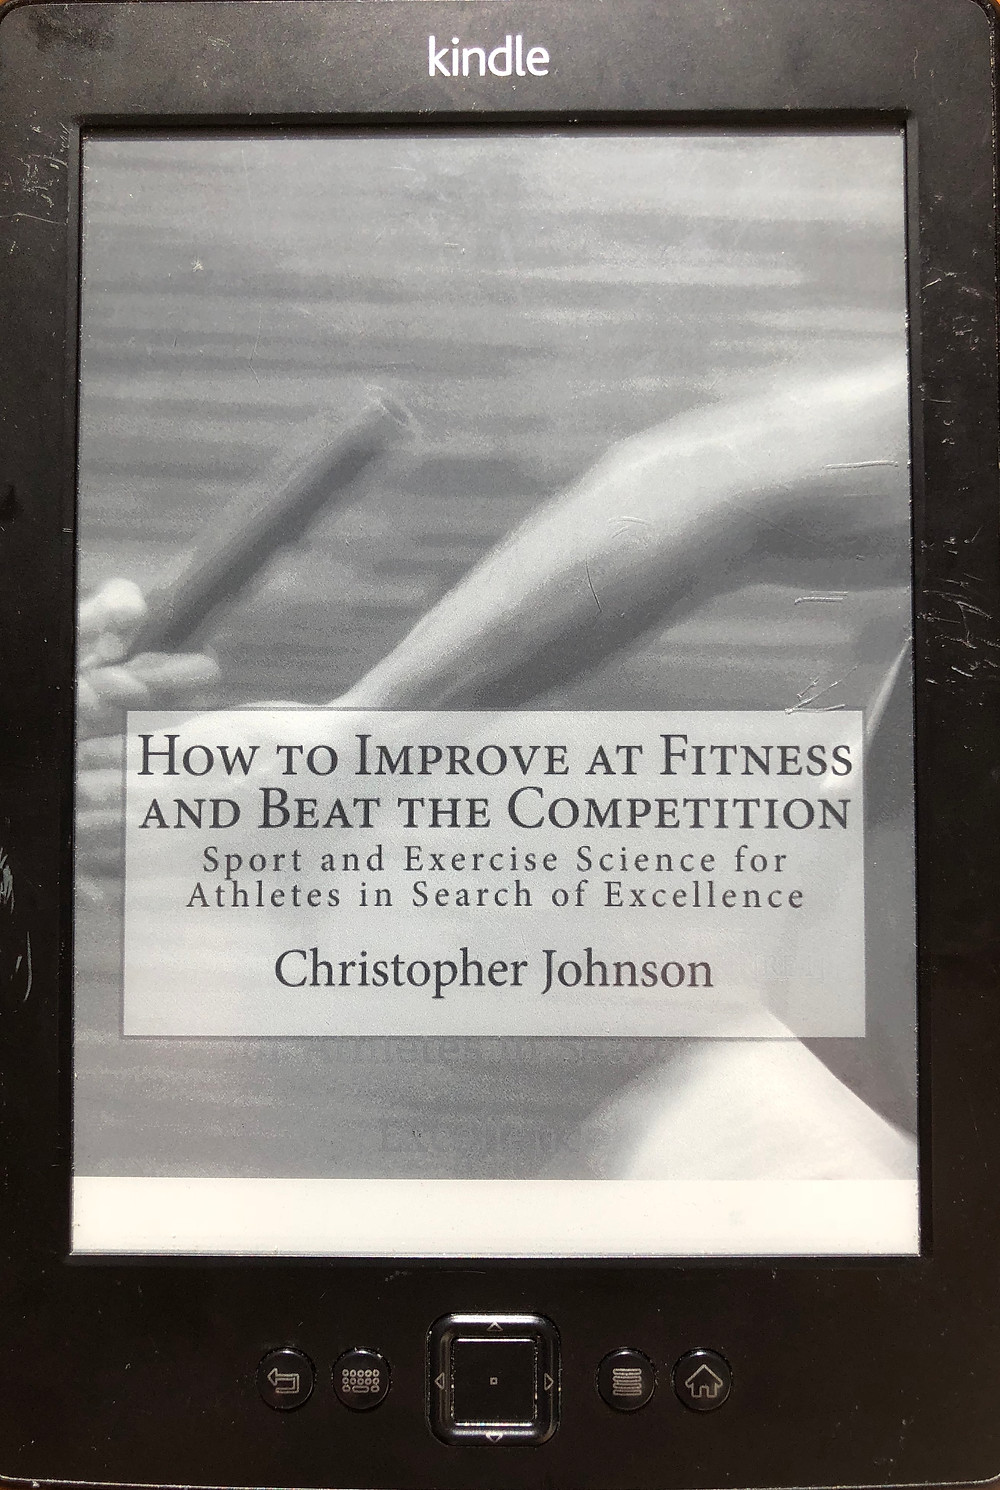 How to Improve at Fitness and Beat the Competition